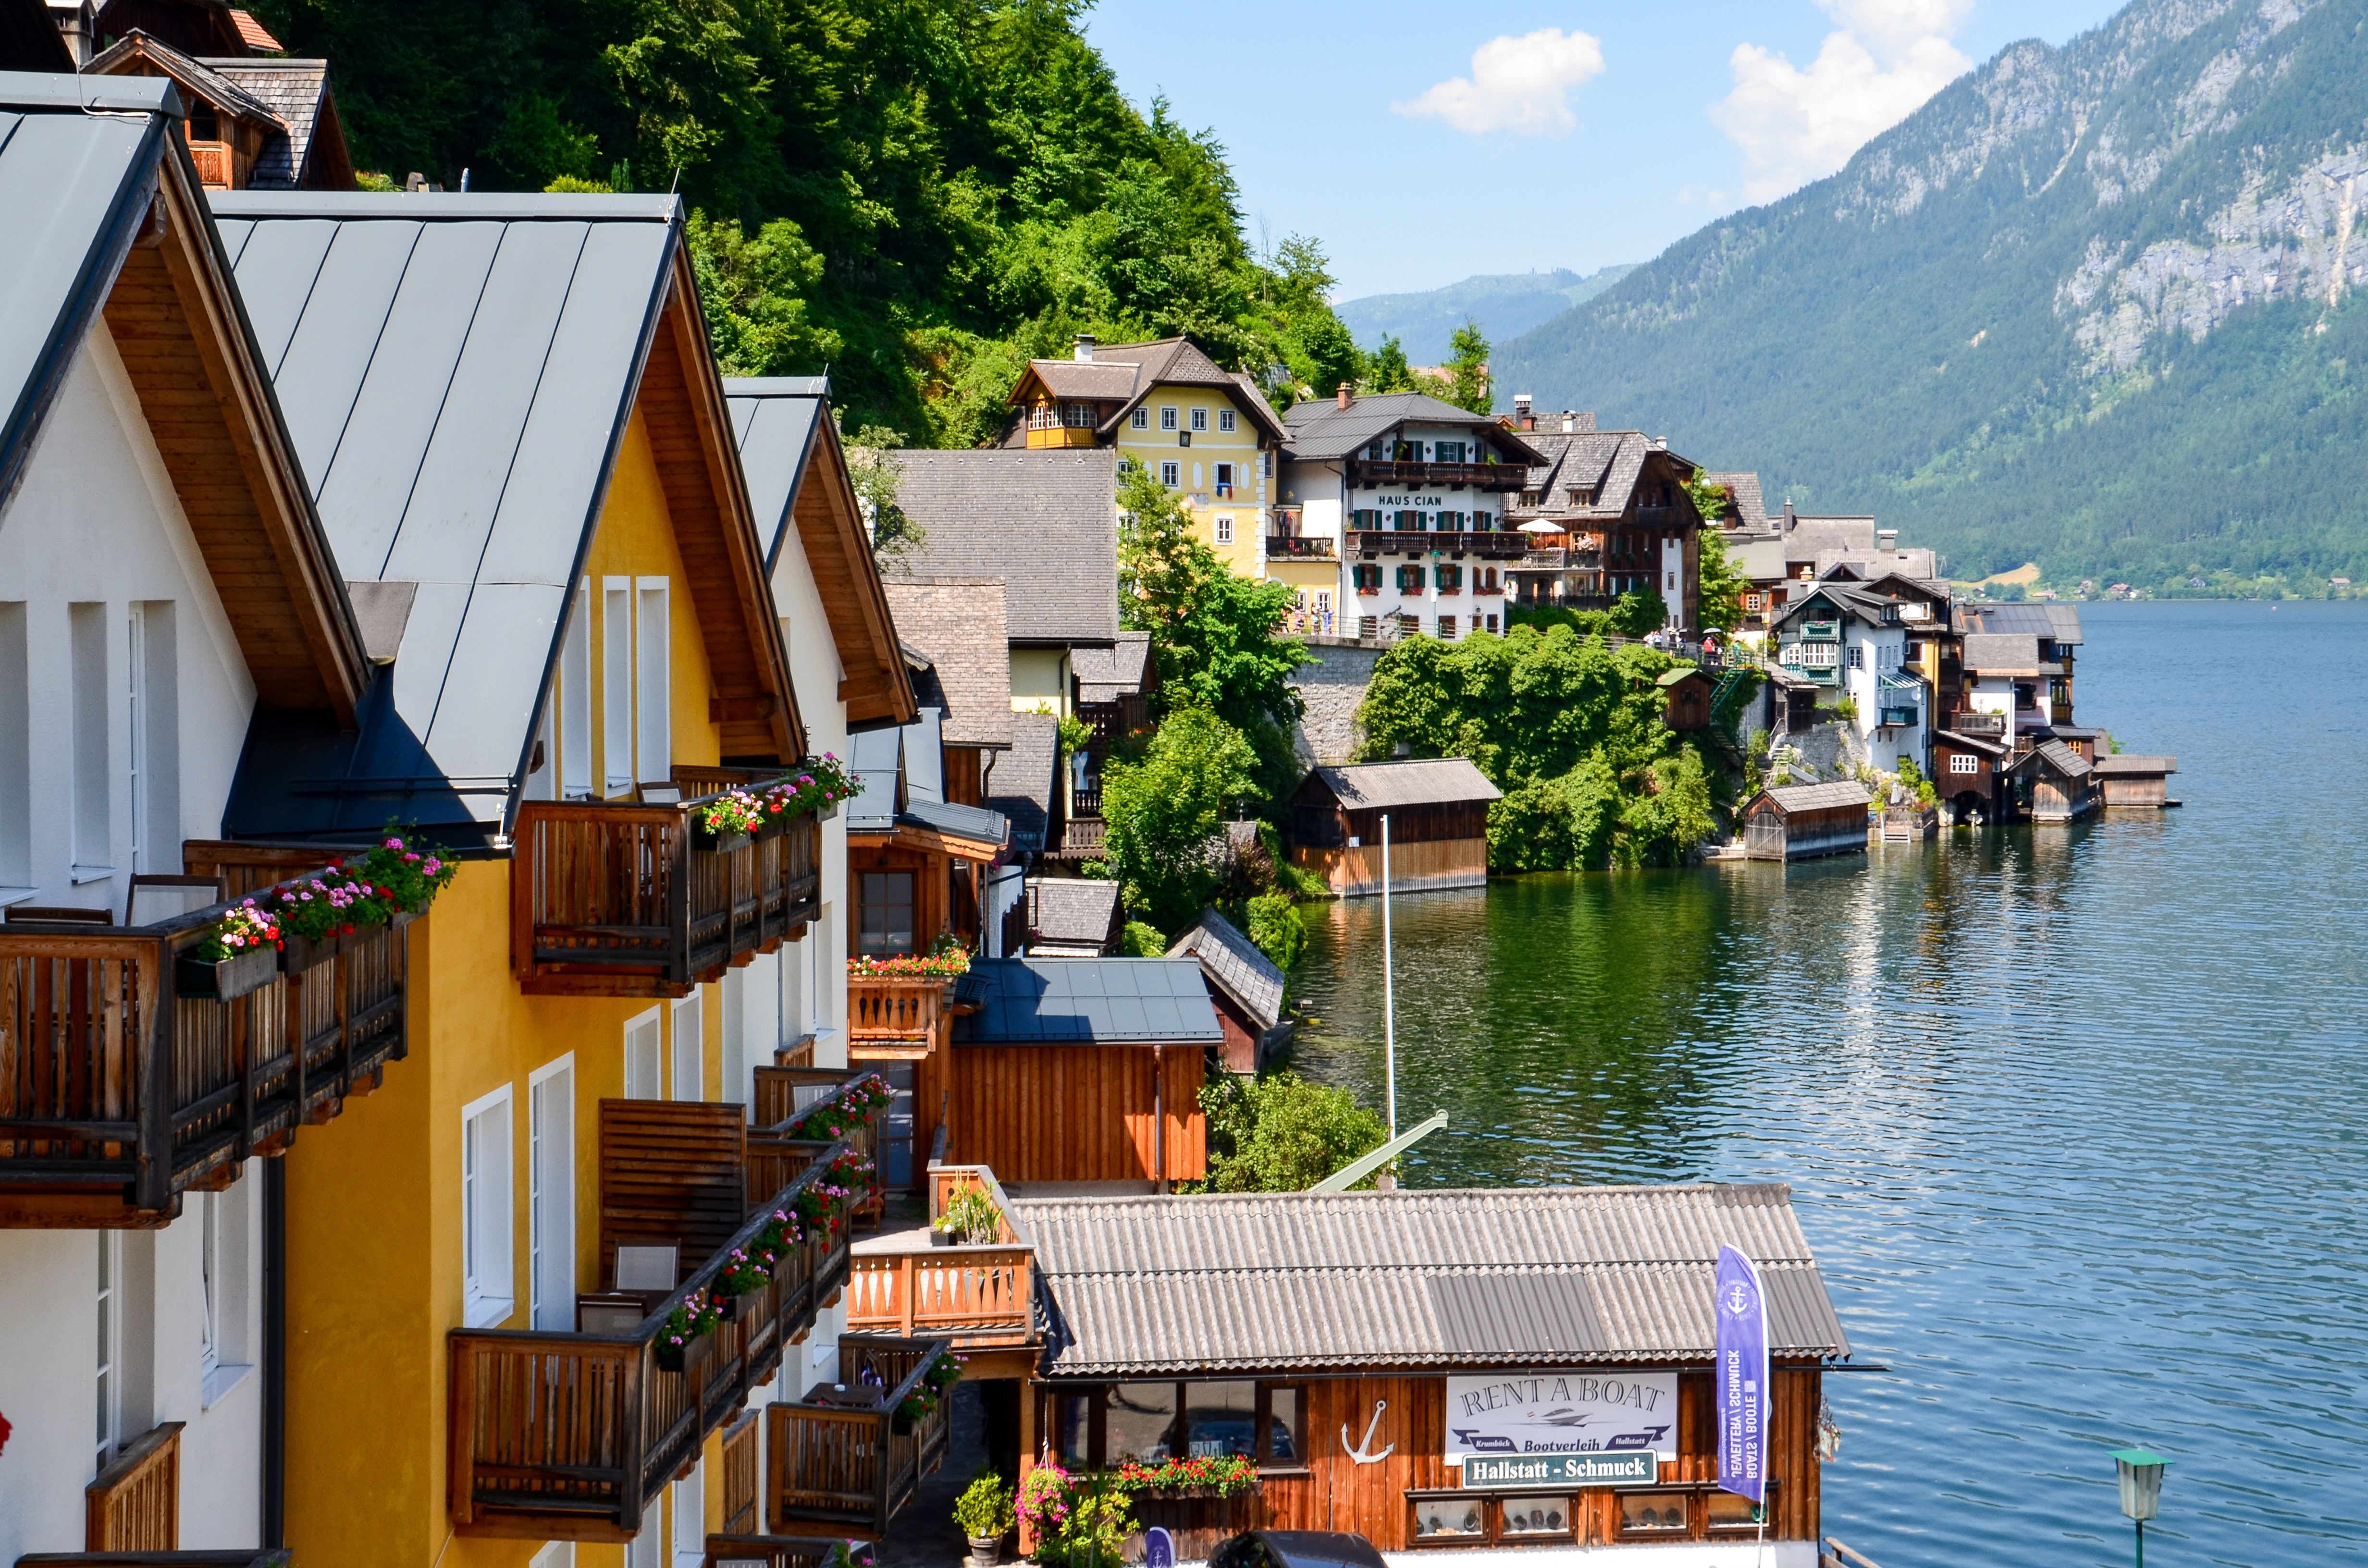 Photography of Houses Beside Body of Water, Roof, Wood, Water, Travel, HQ Photo